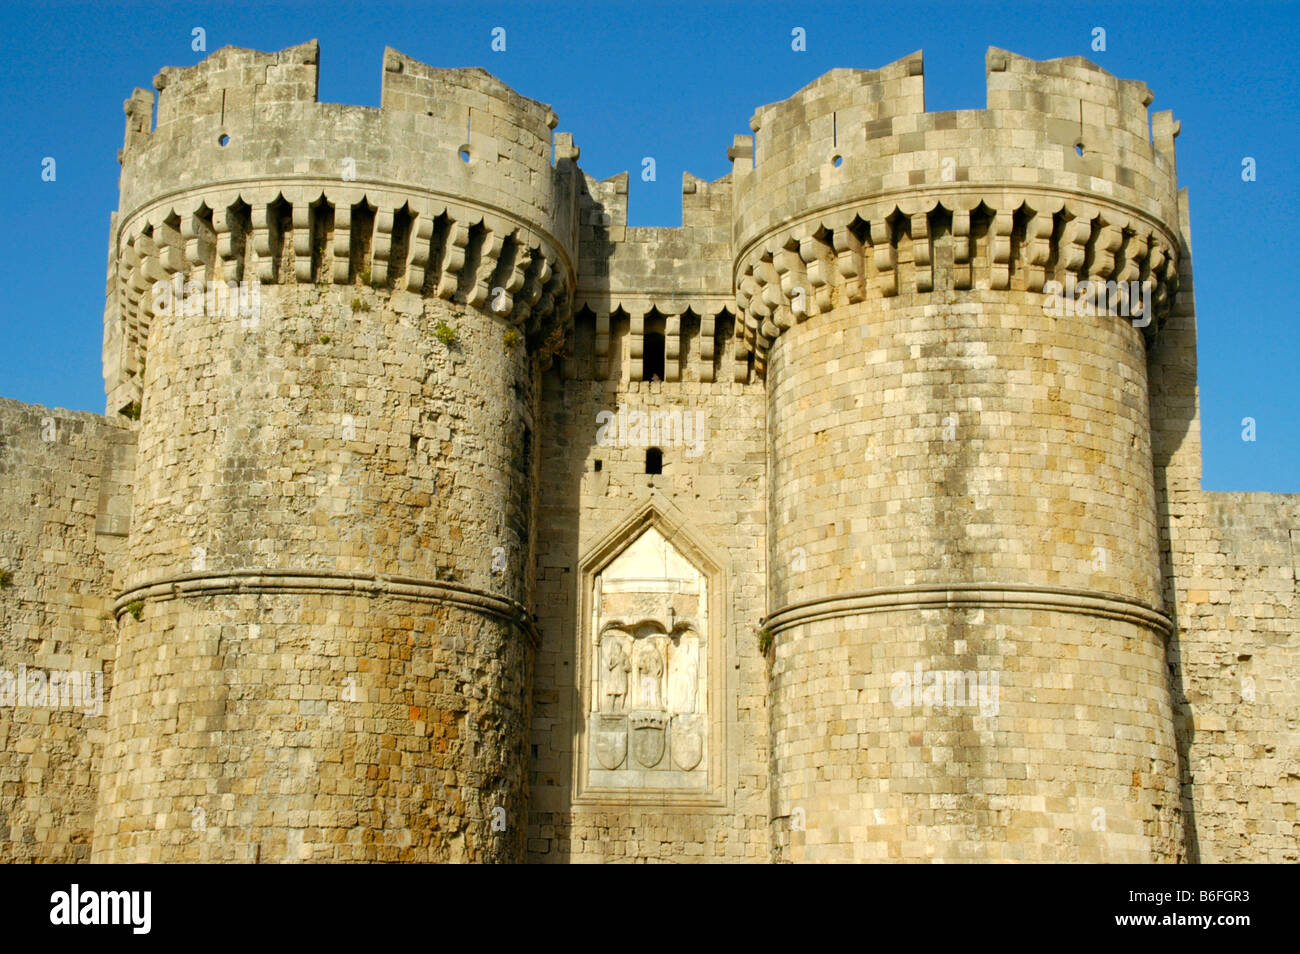 Medieval town gate of the Order of Saint John, Rhodos city, Rhodes Island, Dodecanese, Greece, Europe - Stock Image